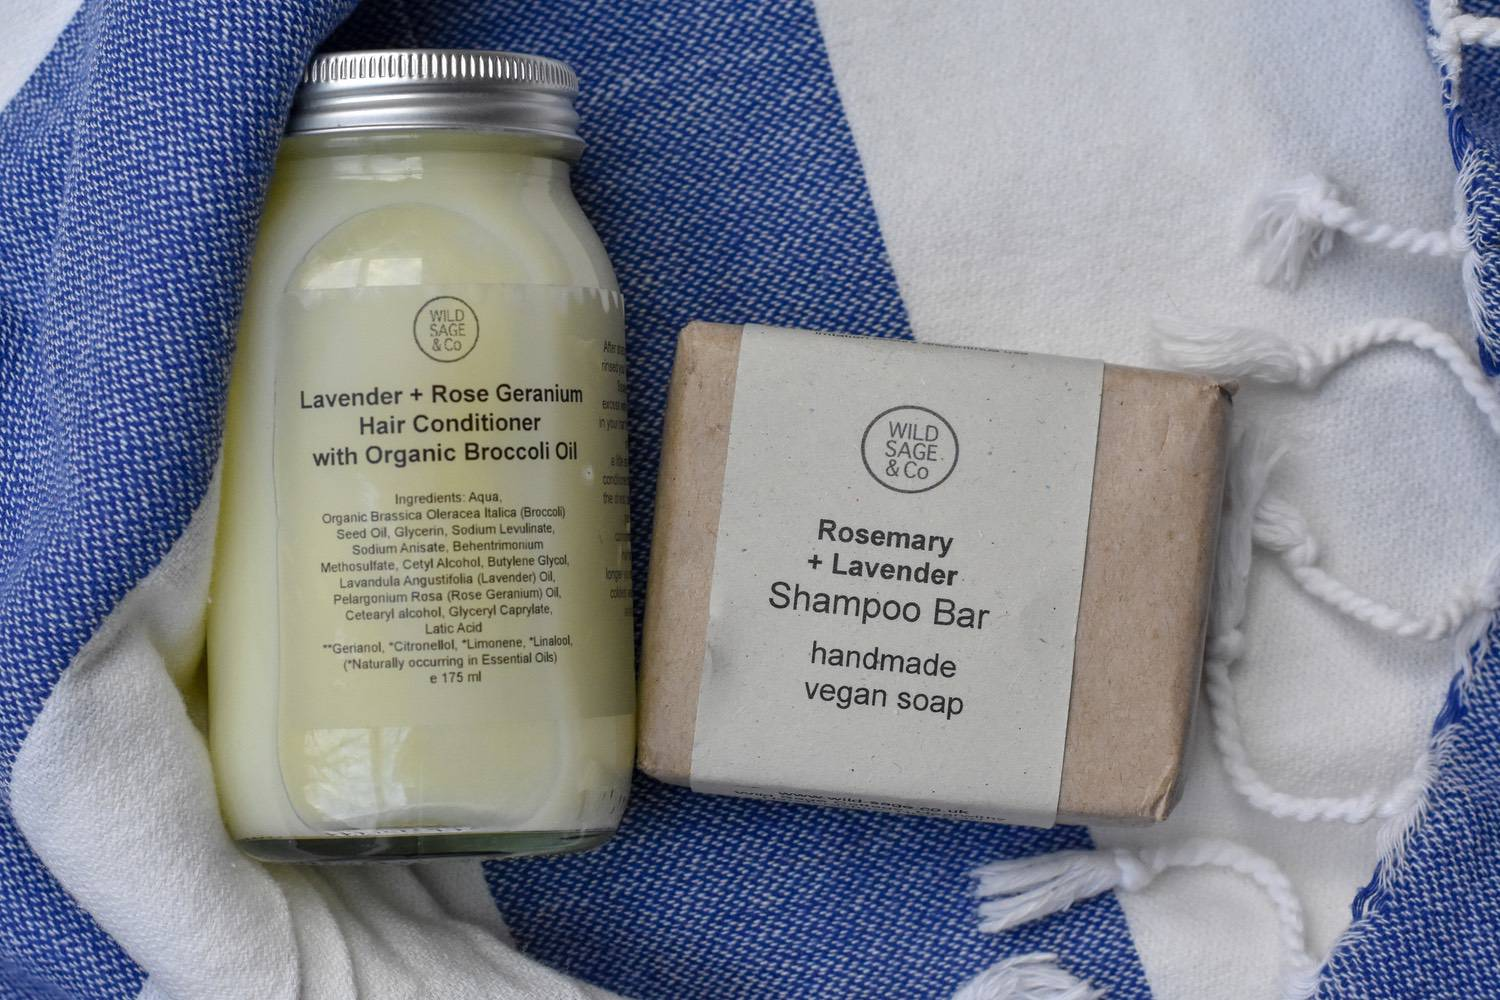 WILD SAGE & Co. - Wild Sage & Co products are ALL lovely.Whilst I've been happy with lots of different shampoo bars, I've found solid conditioners a bit trickier.So this is a combo I really like - a shampoo bar, and a more traditional liquid conditioner, made with broccoli oil, of all things.I've read it's a complicated piece of alchemy, hence the hefty price tag. But for handmade, natural, shelf-worthy-plastic-free products - this range of gorgeous body, skin and hair is definitely worth a stretching the budget a little bit for.